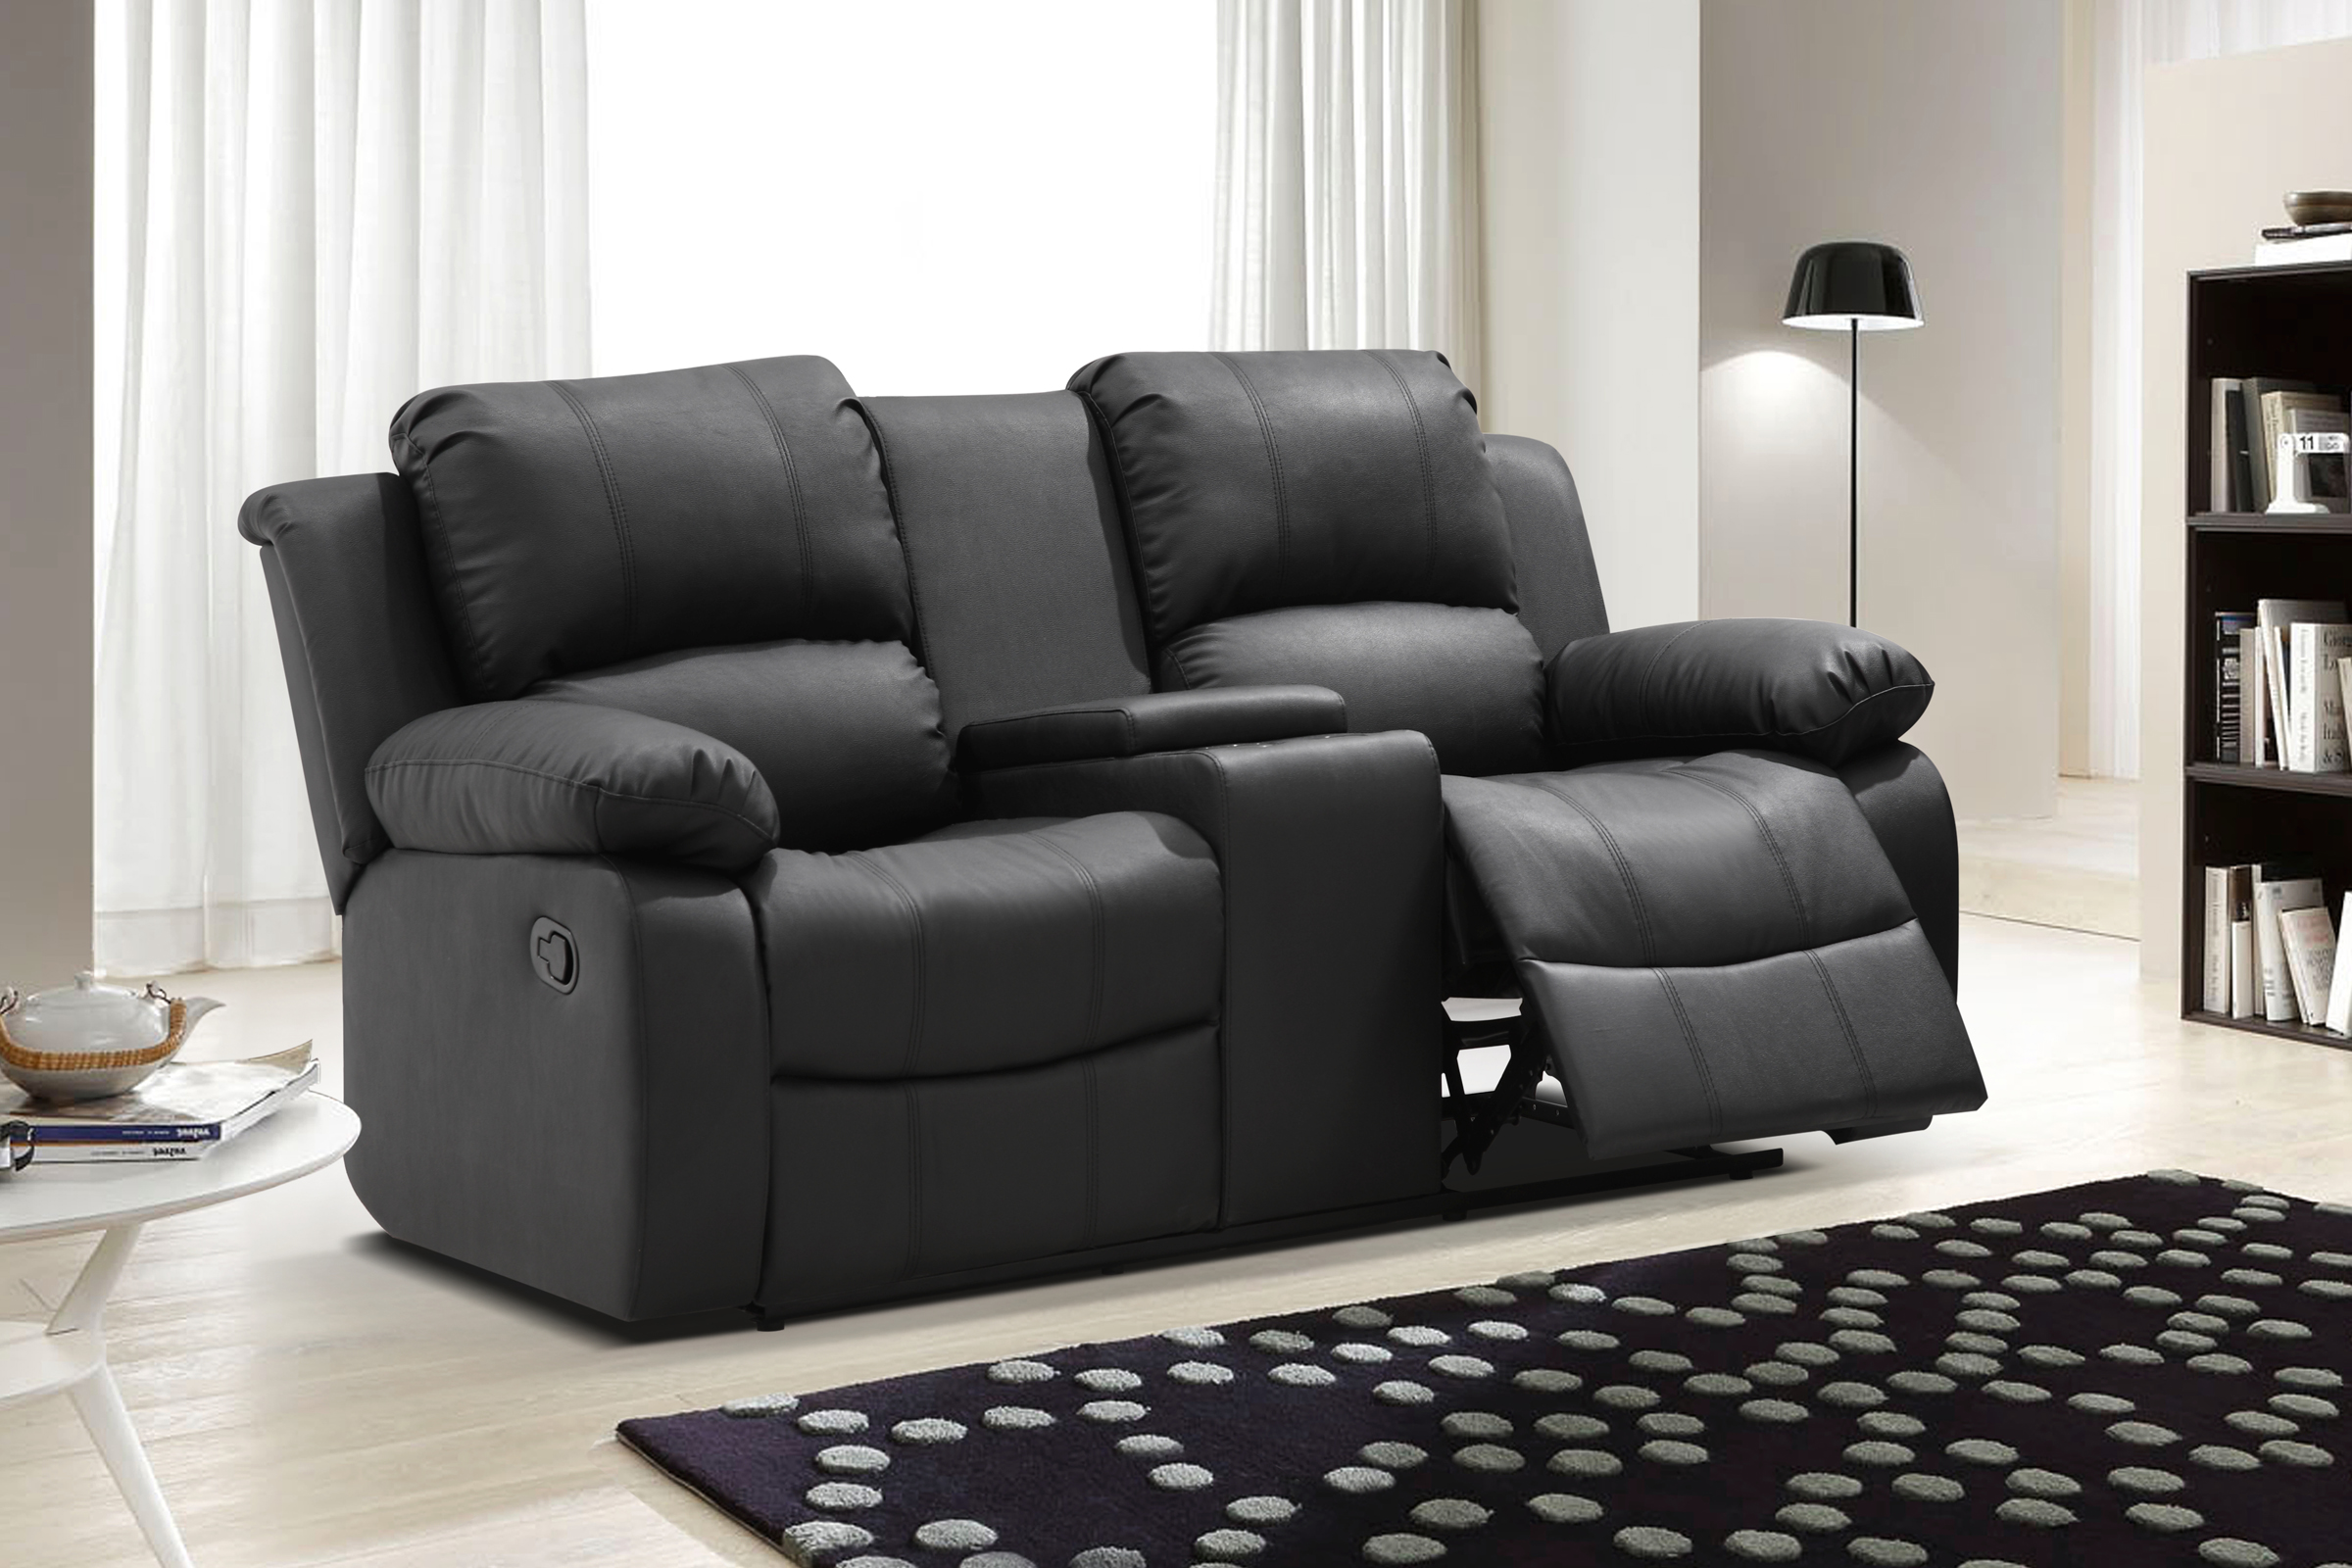 tribecca home eland black bonded leather sofa set repair kajang recliner love seat paramount reclining